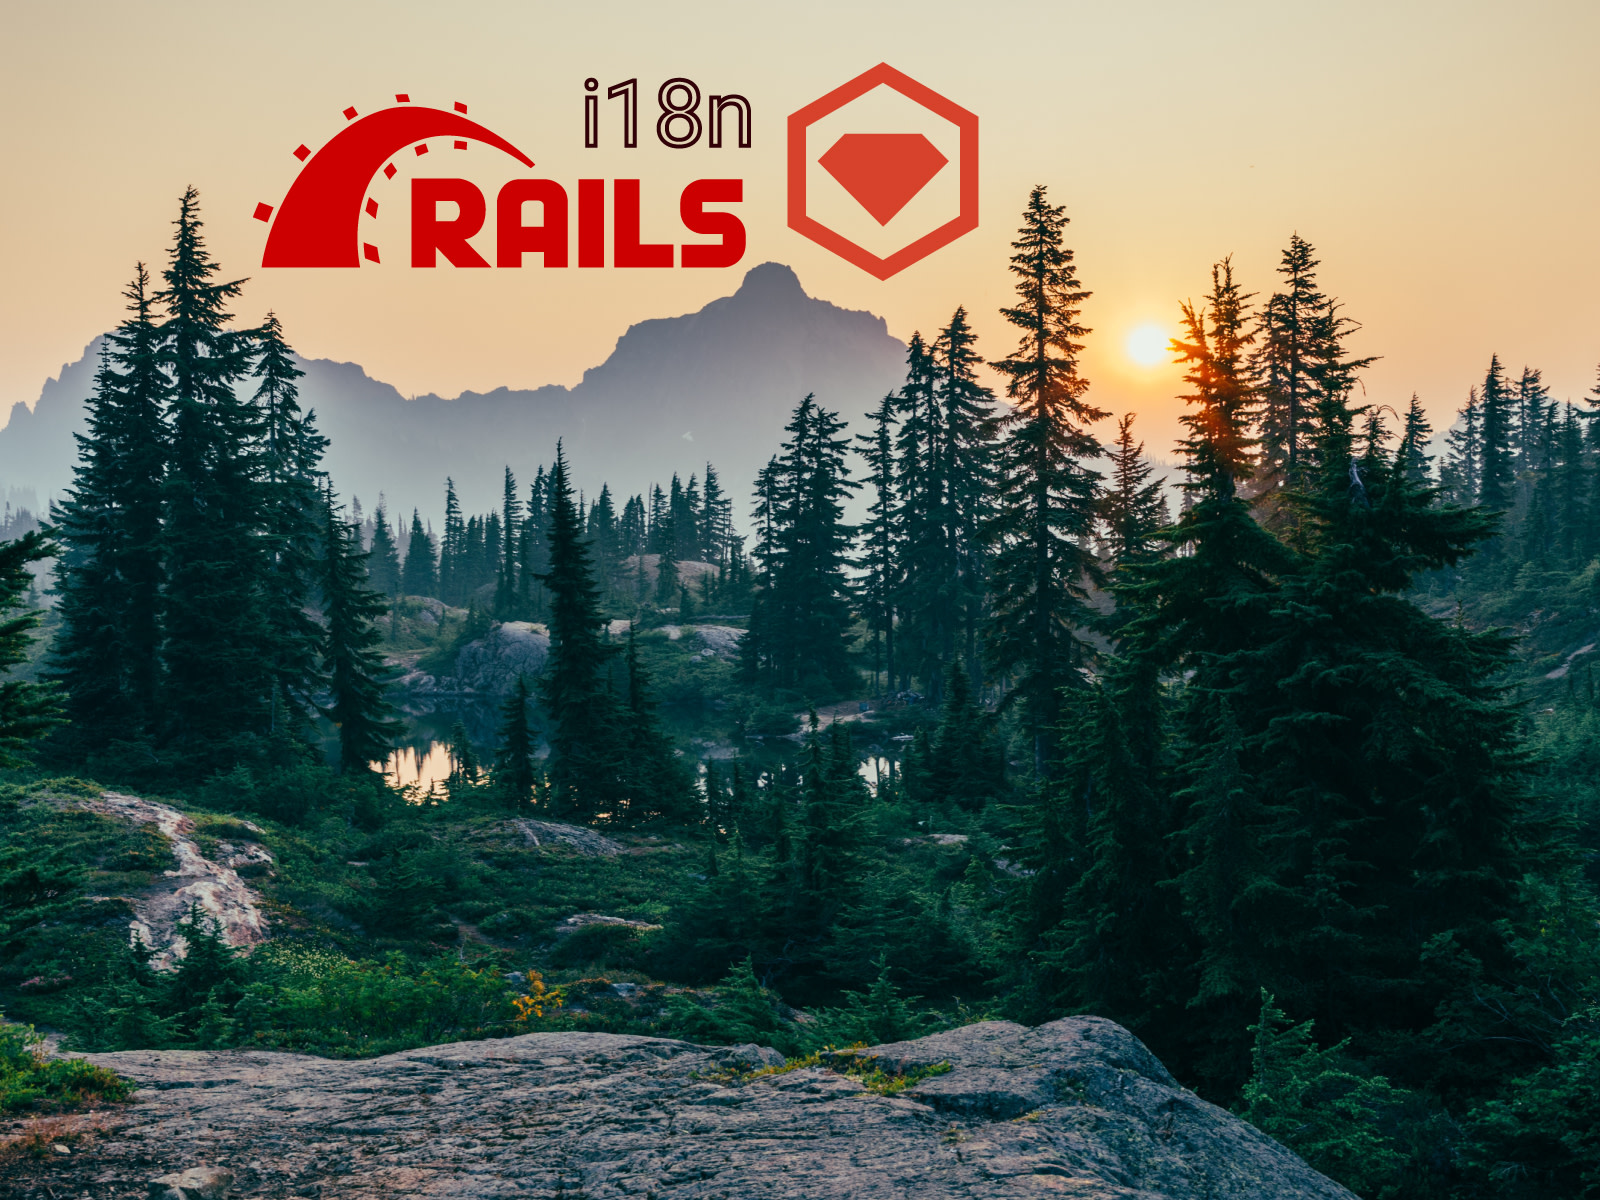 Blog post image with i18n Ruby on Rails logo